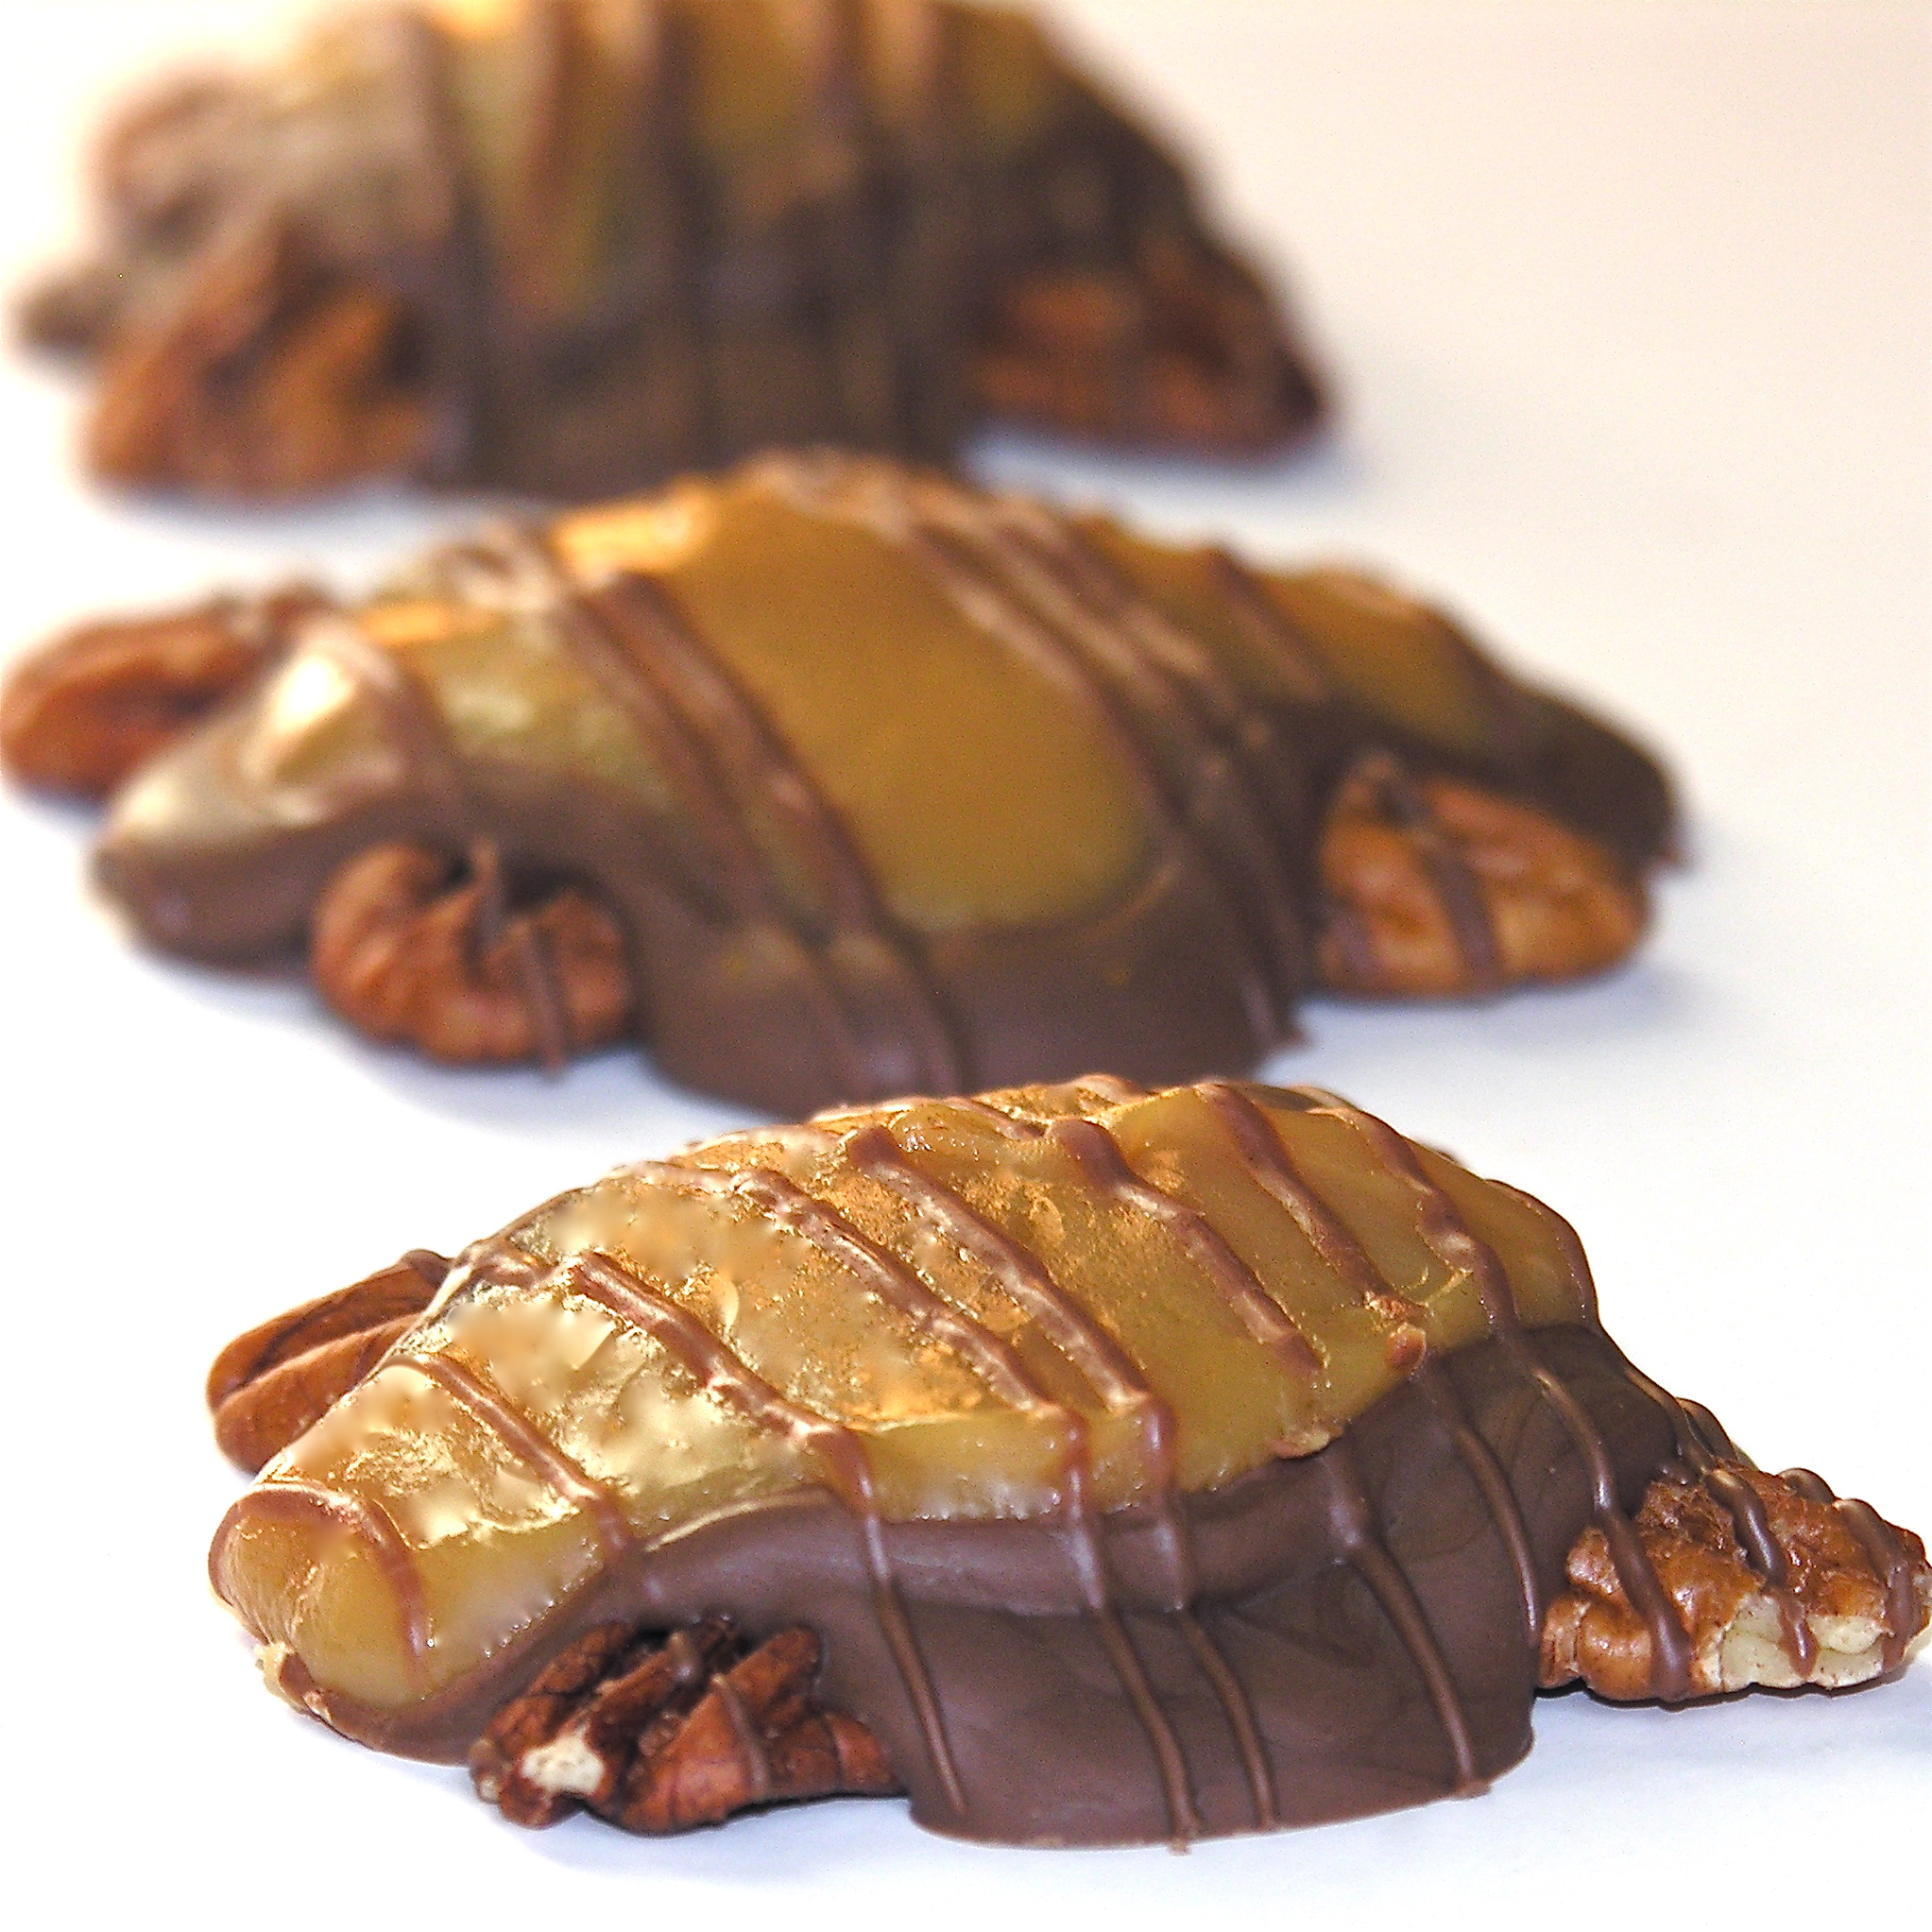 Homemade Caramel Turtles | eASYbAKED